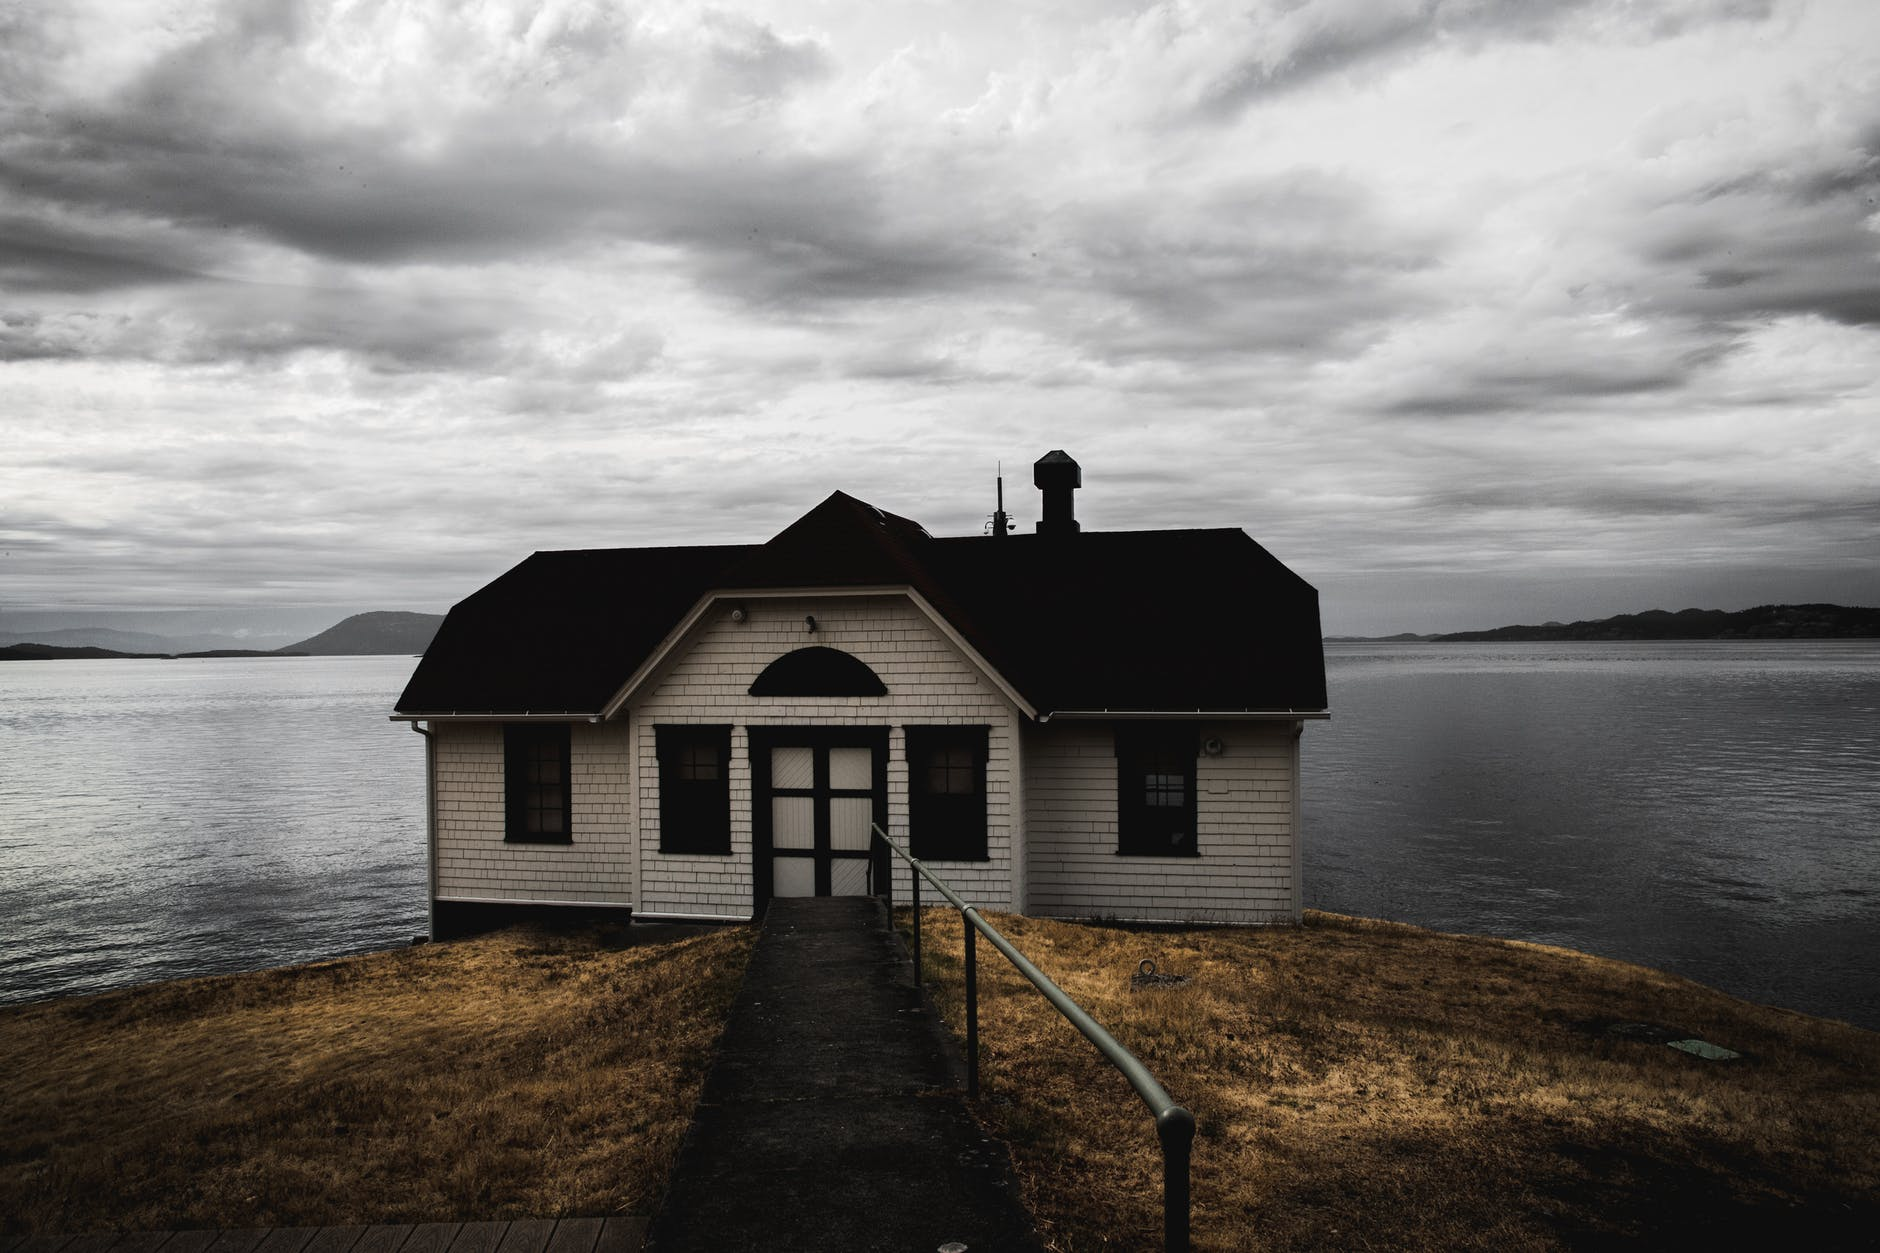 white and brown wooden house near calm body of water under cumulus clouds